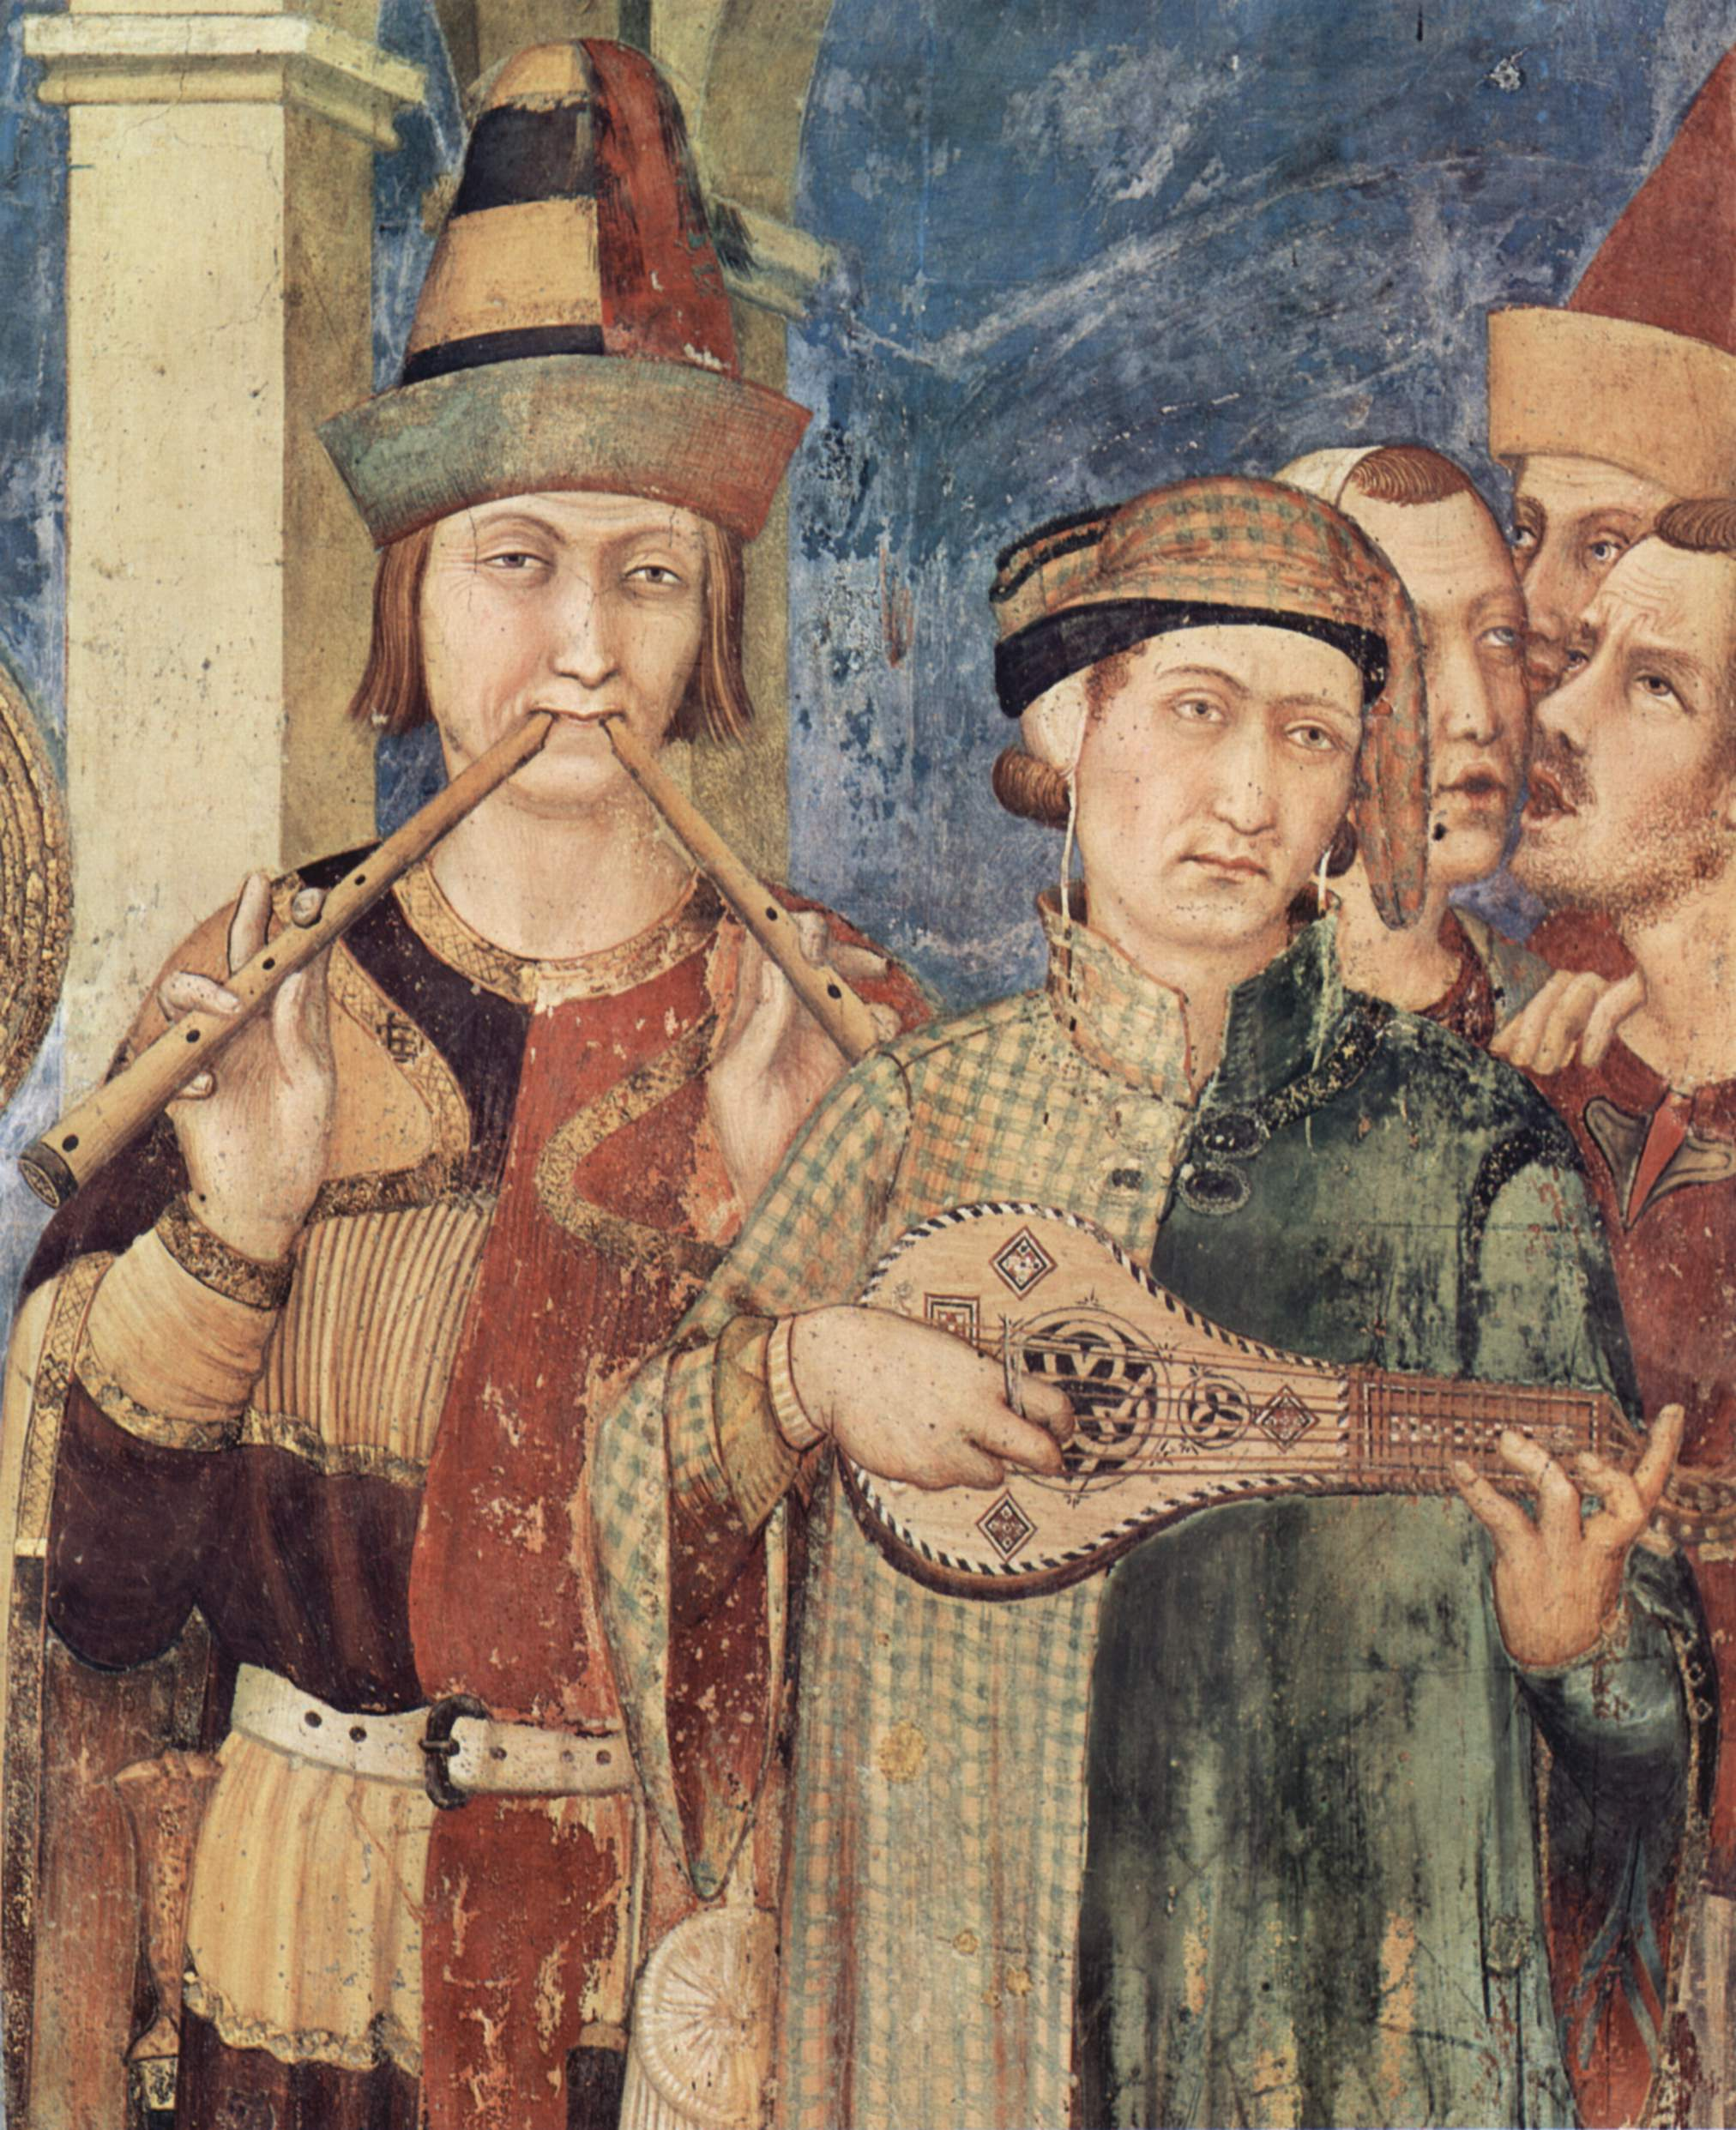 File:Simone Martini 037.jpg - Wikimedia Commons